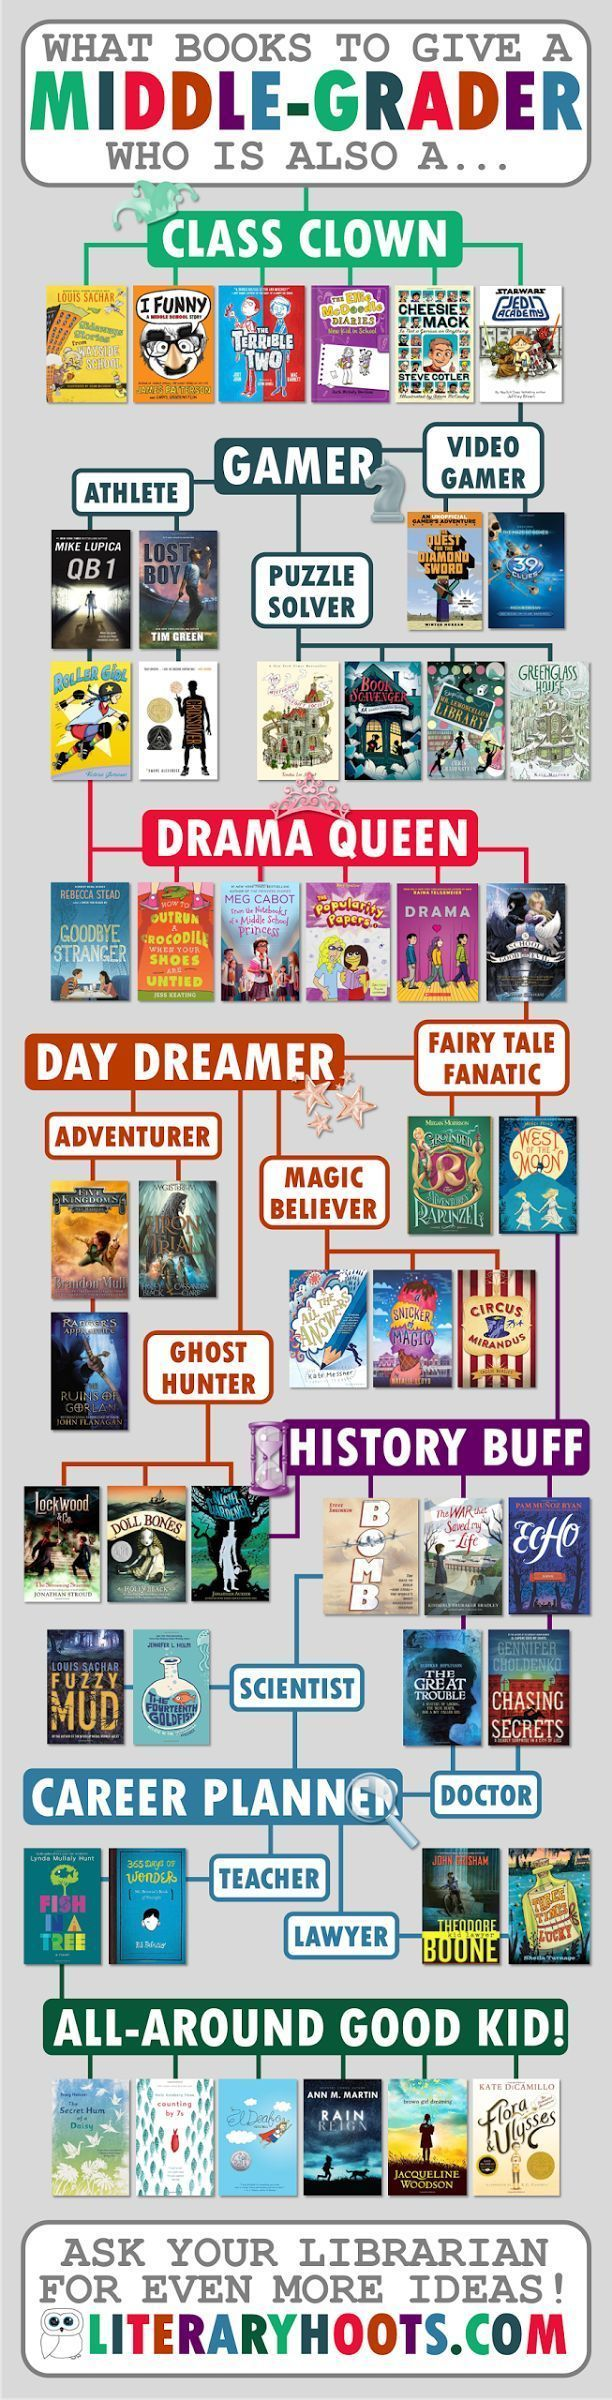 Flowchart: What Books To Give A Middlegrader